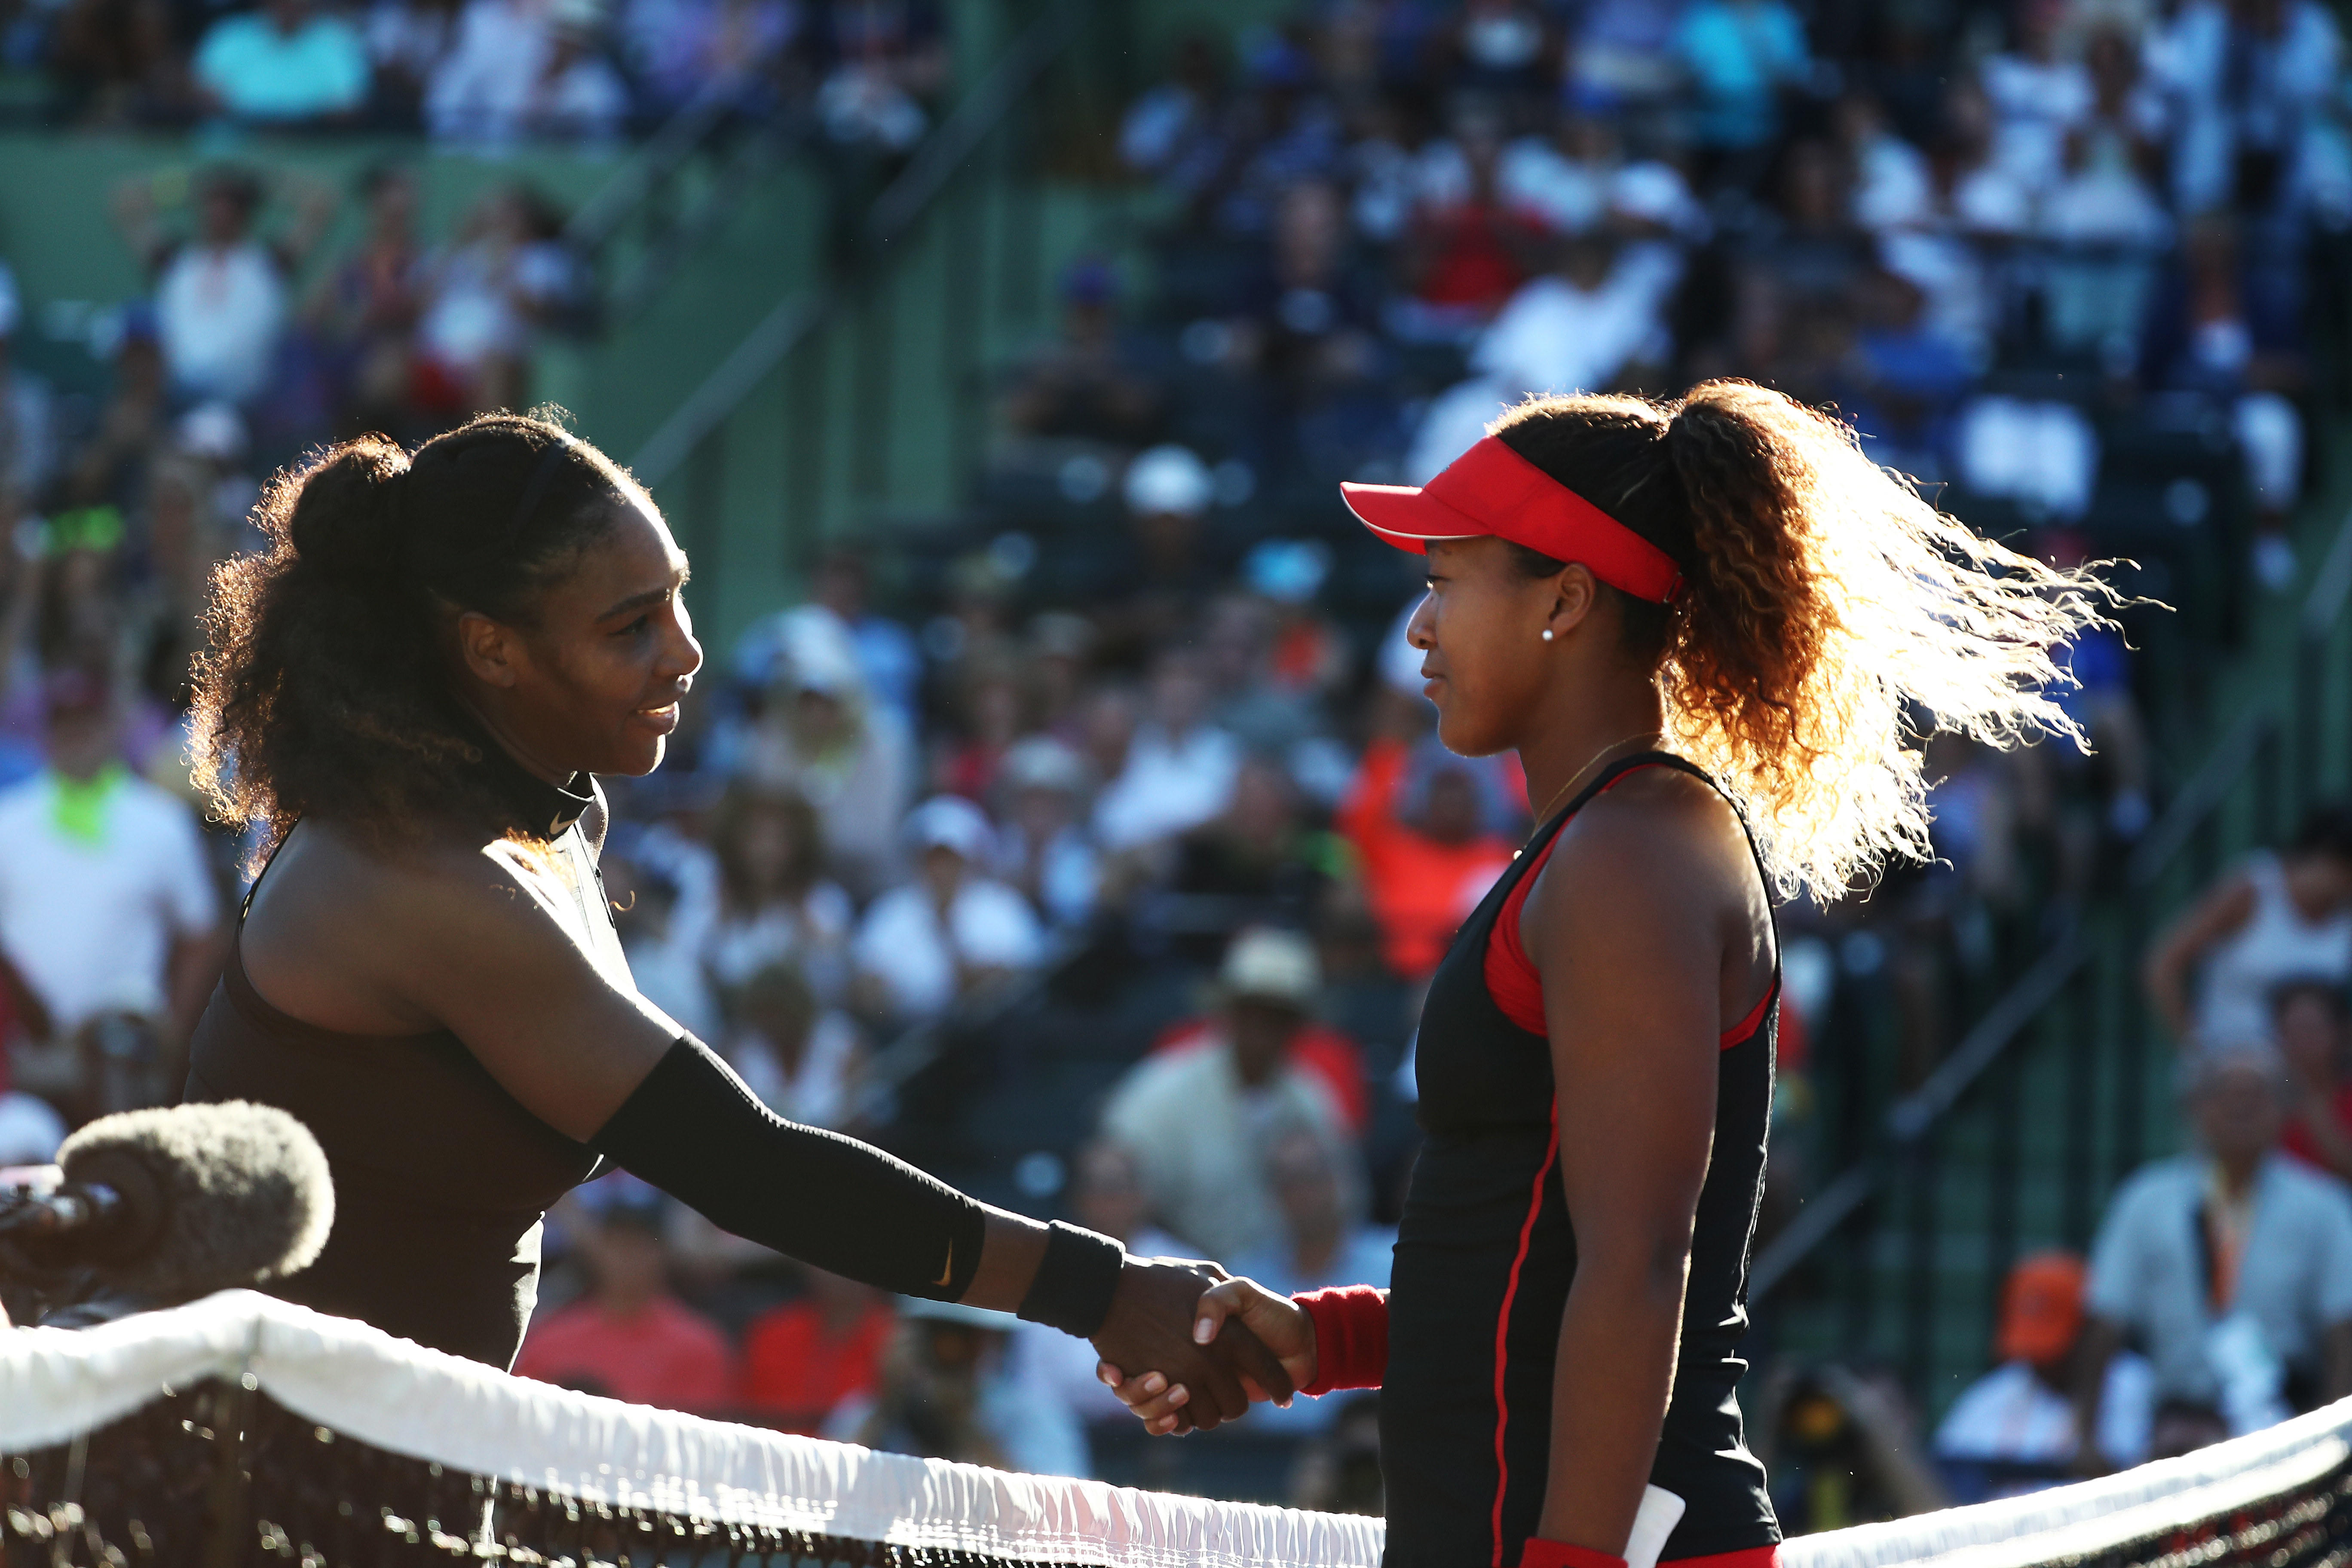 Serena Williams meets Naomi Osaka of Japan after losing to her in straight sets during Day 3 of the Miami Open at the Crandon Park Tennis Center on March 19, 2018, in Key Biscayne, Florida (Getty Images)